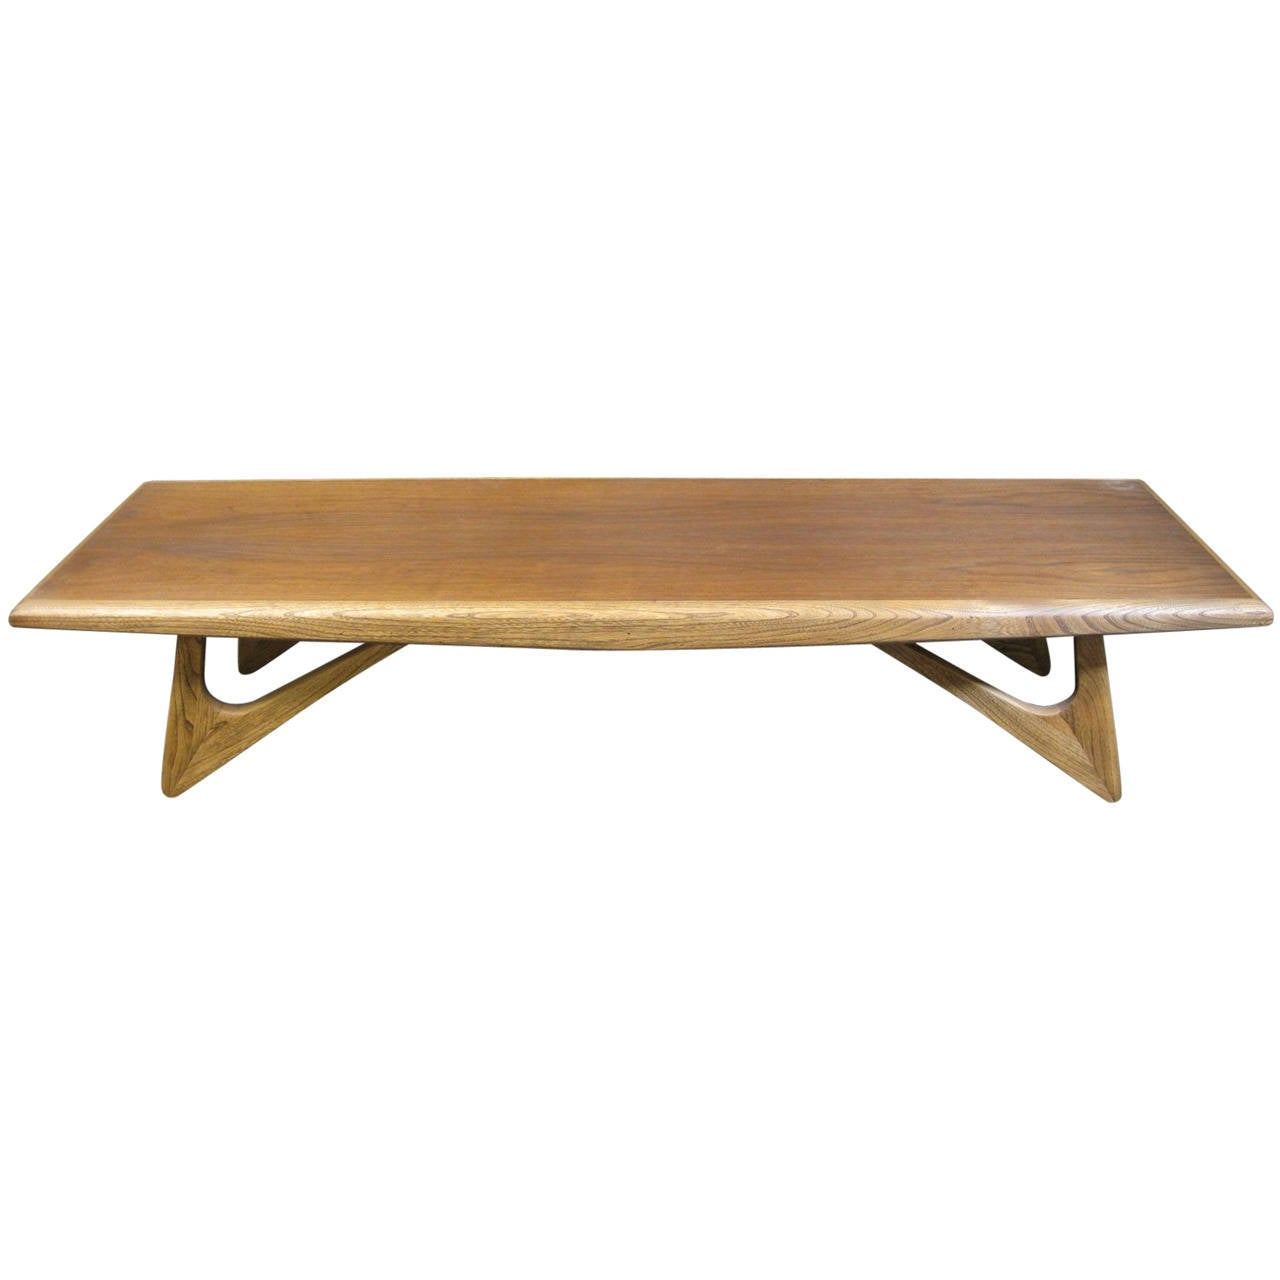 Adrian pearsall style coffee table mid century modern at for Modern style coffee tables